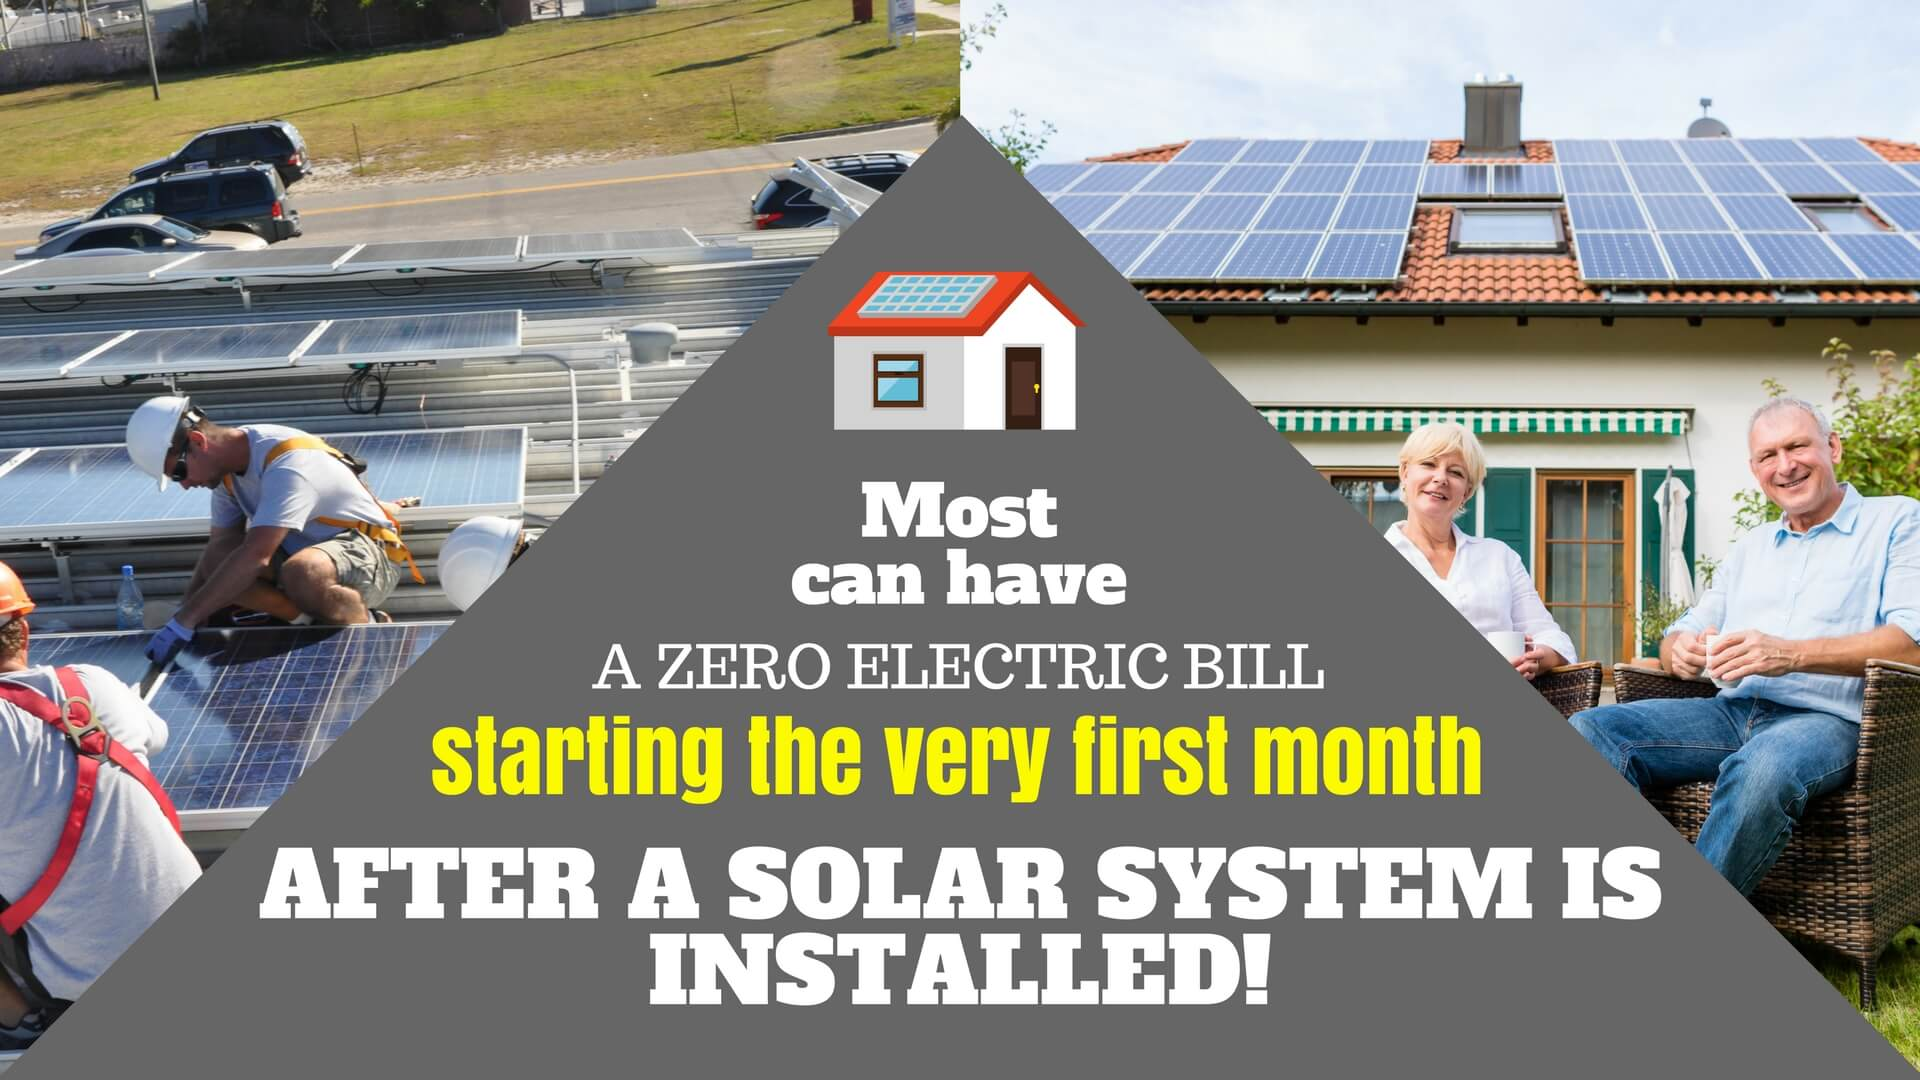 Most homeowners and business owners can have a zero electric bill starting the first month after a solar electric system is installed on their home or business.